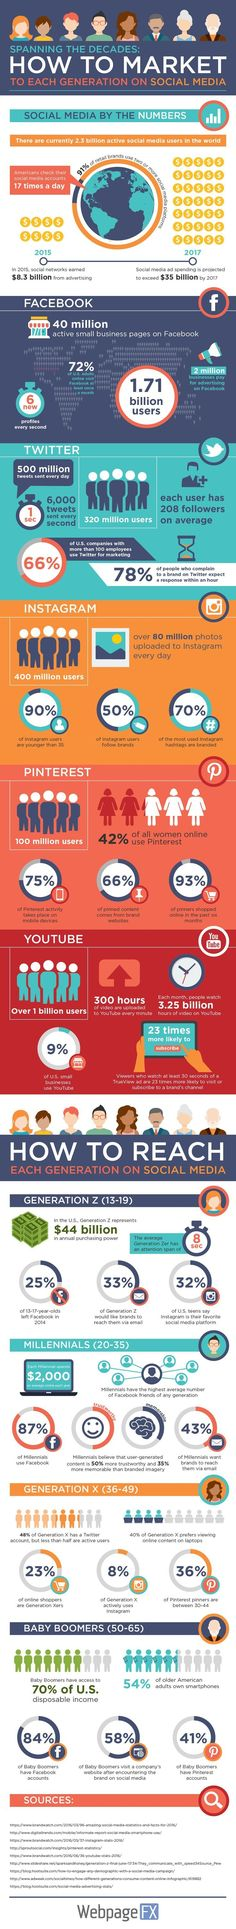 Spanning the Decades: How to Market to Each Generation on Social Media (Infographic)